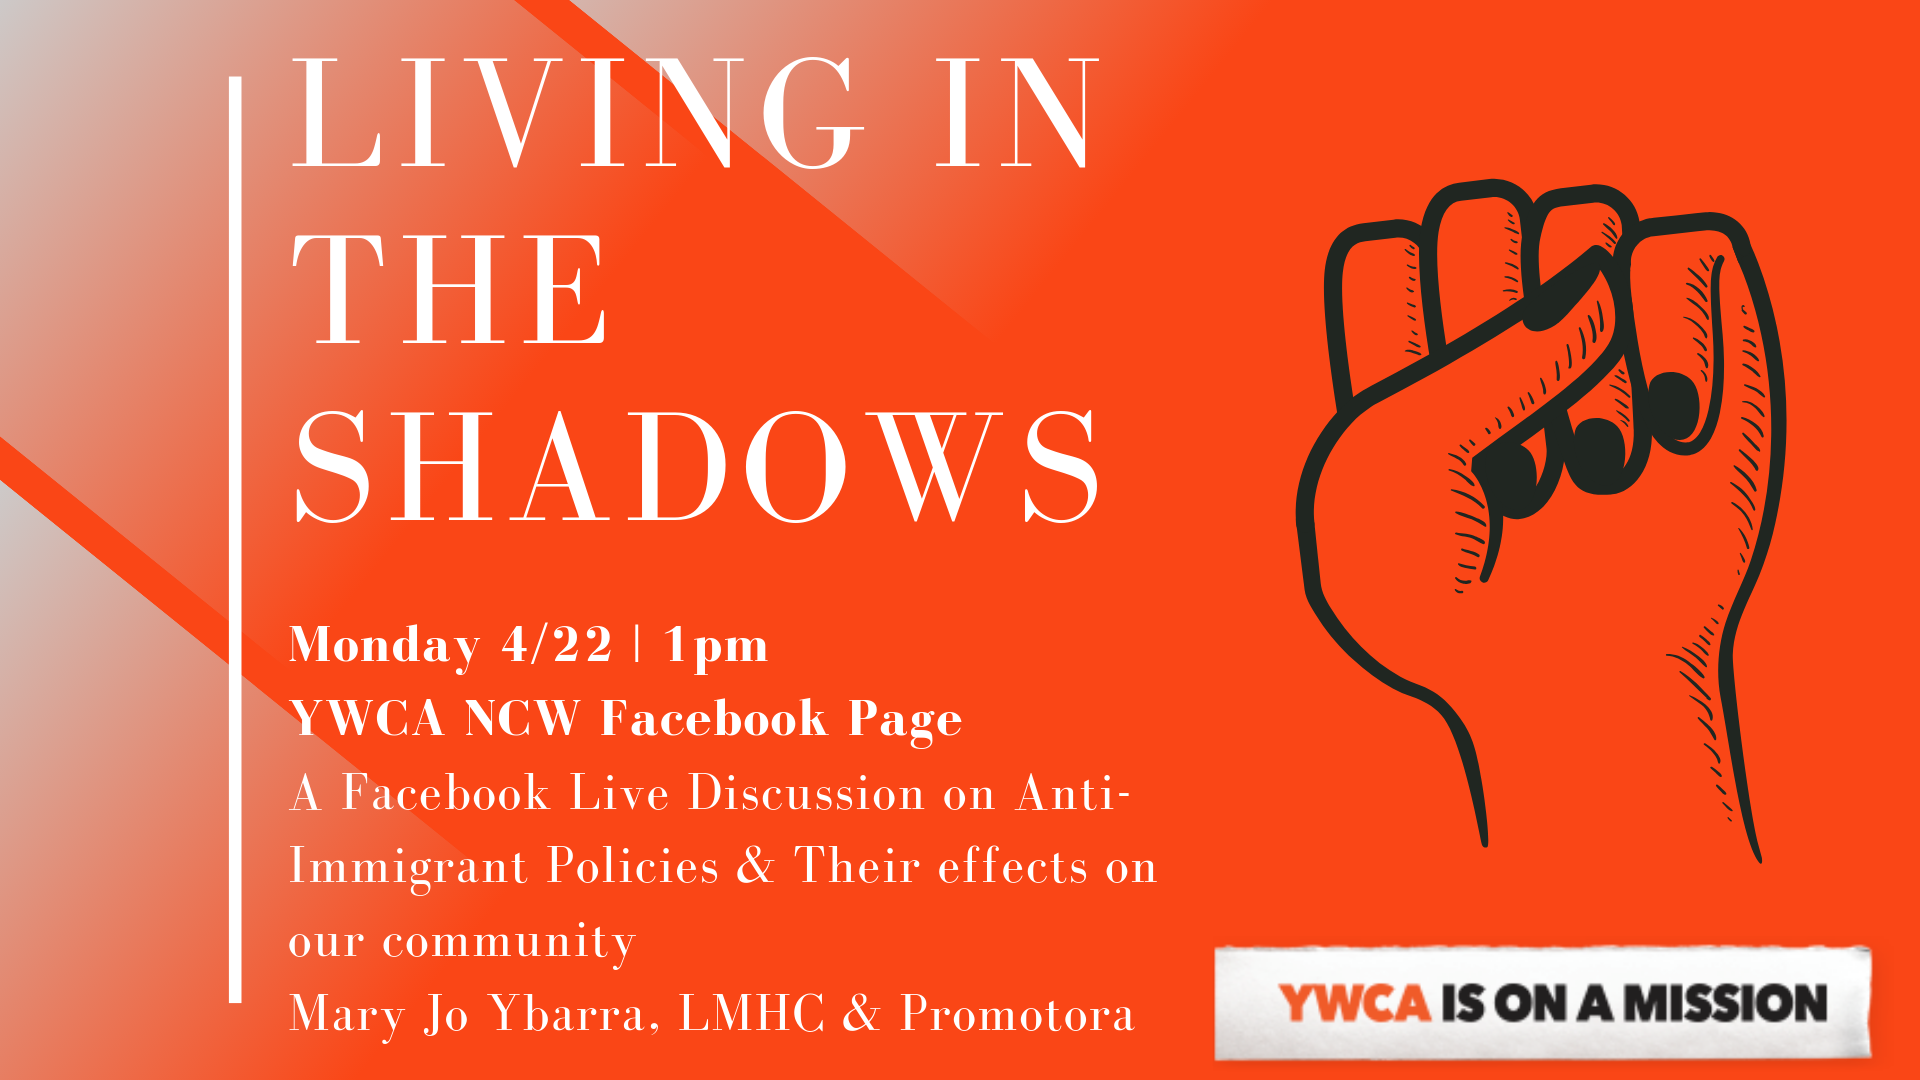 Facebook Live Discussion: Living in the Shadows @ YWCA NCW